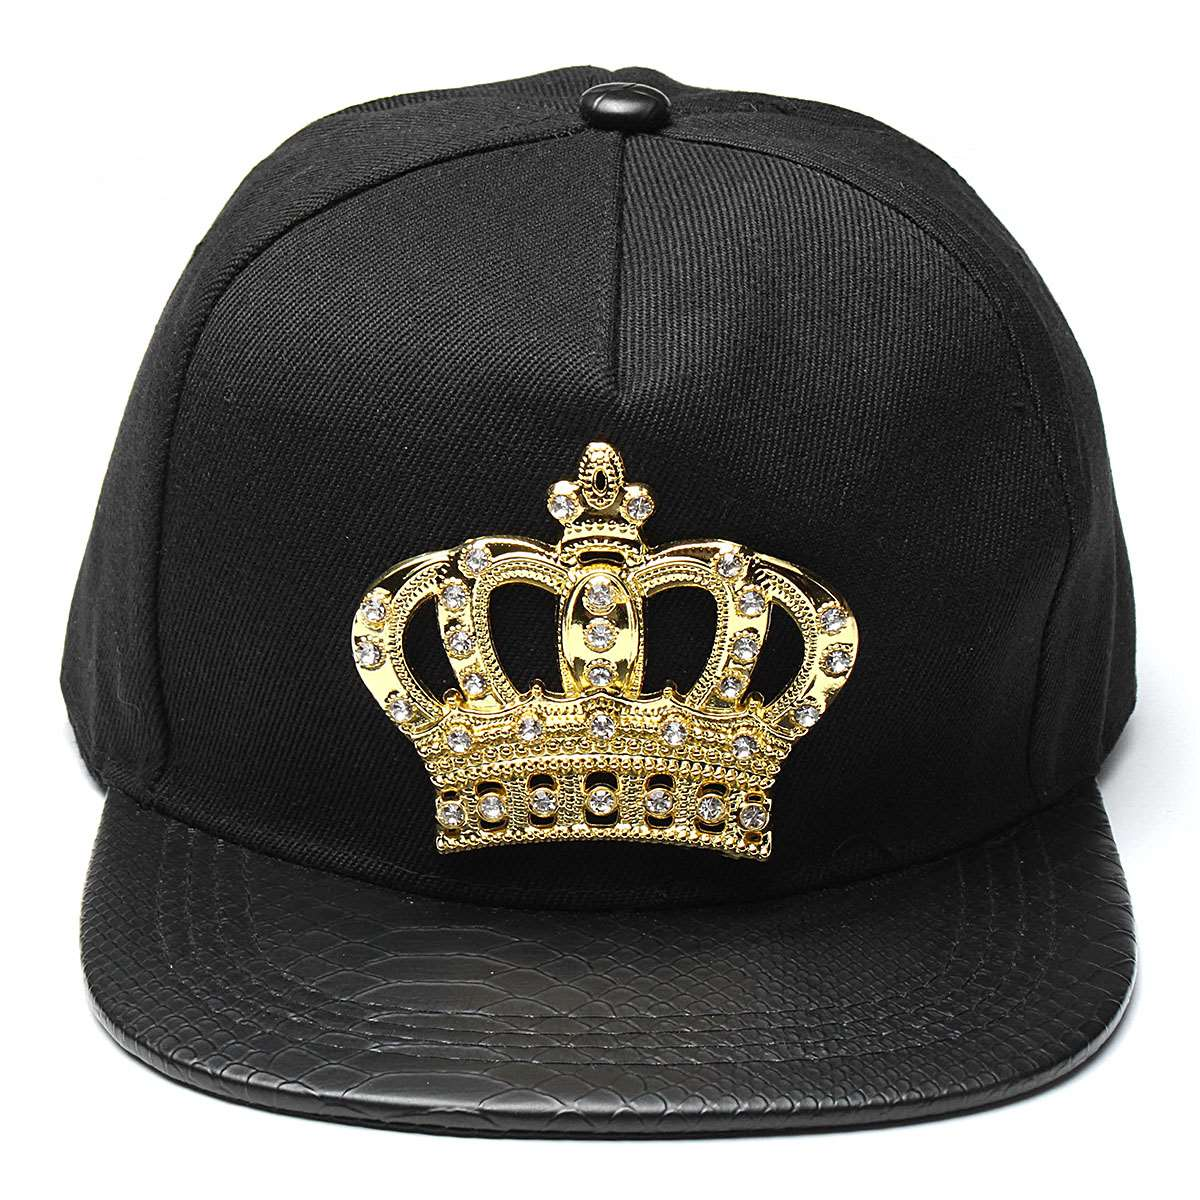 6c63c770f Mens Womens Snapback Hat KING Crown Baseball Caps Adjustable Hip Hop Hats  Black Summer Peaked Rhinestone Crystal Sun Cap-in Baseball Caps from  Apparel ...